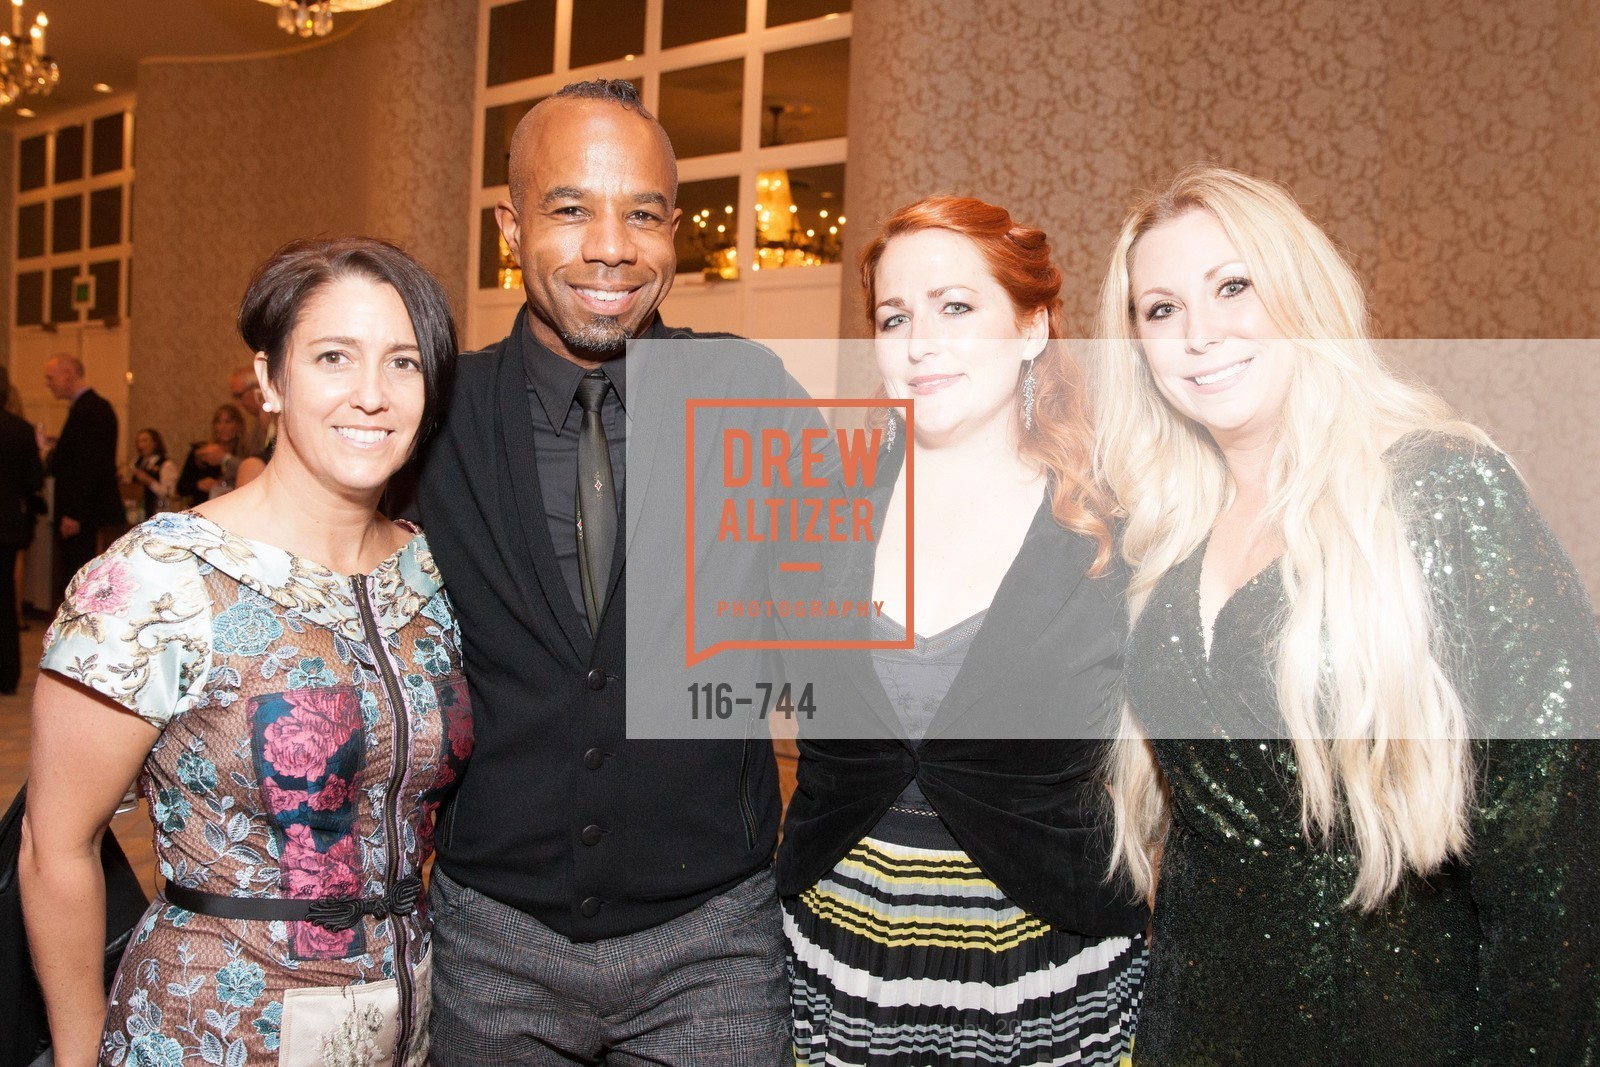 Carolina Data, Reggie Snowden, Renee Pelton, Kyla Naegle, Celebration of Launch of SHYP in Los Angeles, US, May 21st, 2015,Drew Altizer, Drew Altizer Photography, full-service agency, private events, San Francisco photographer, photographer california